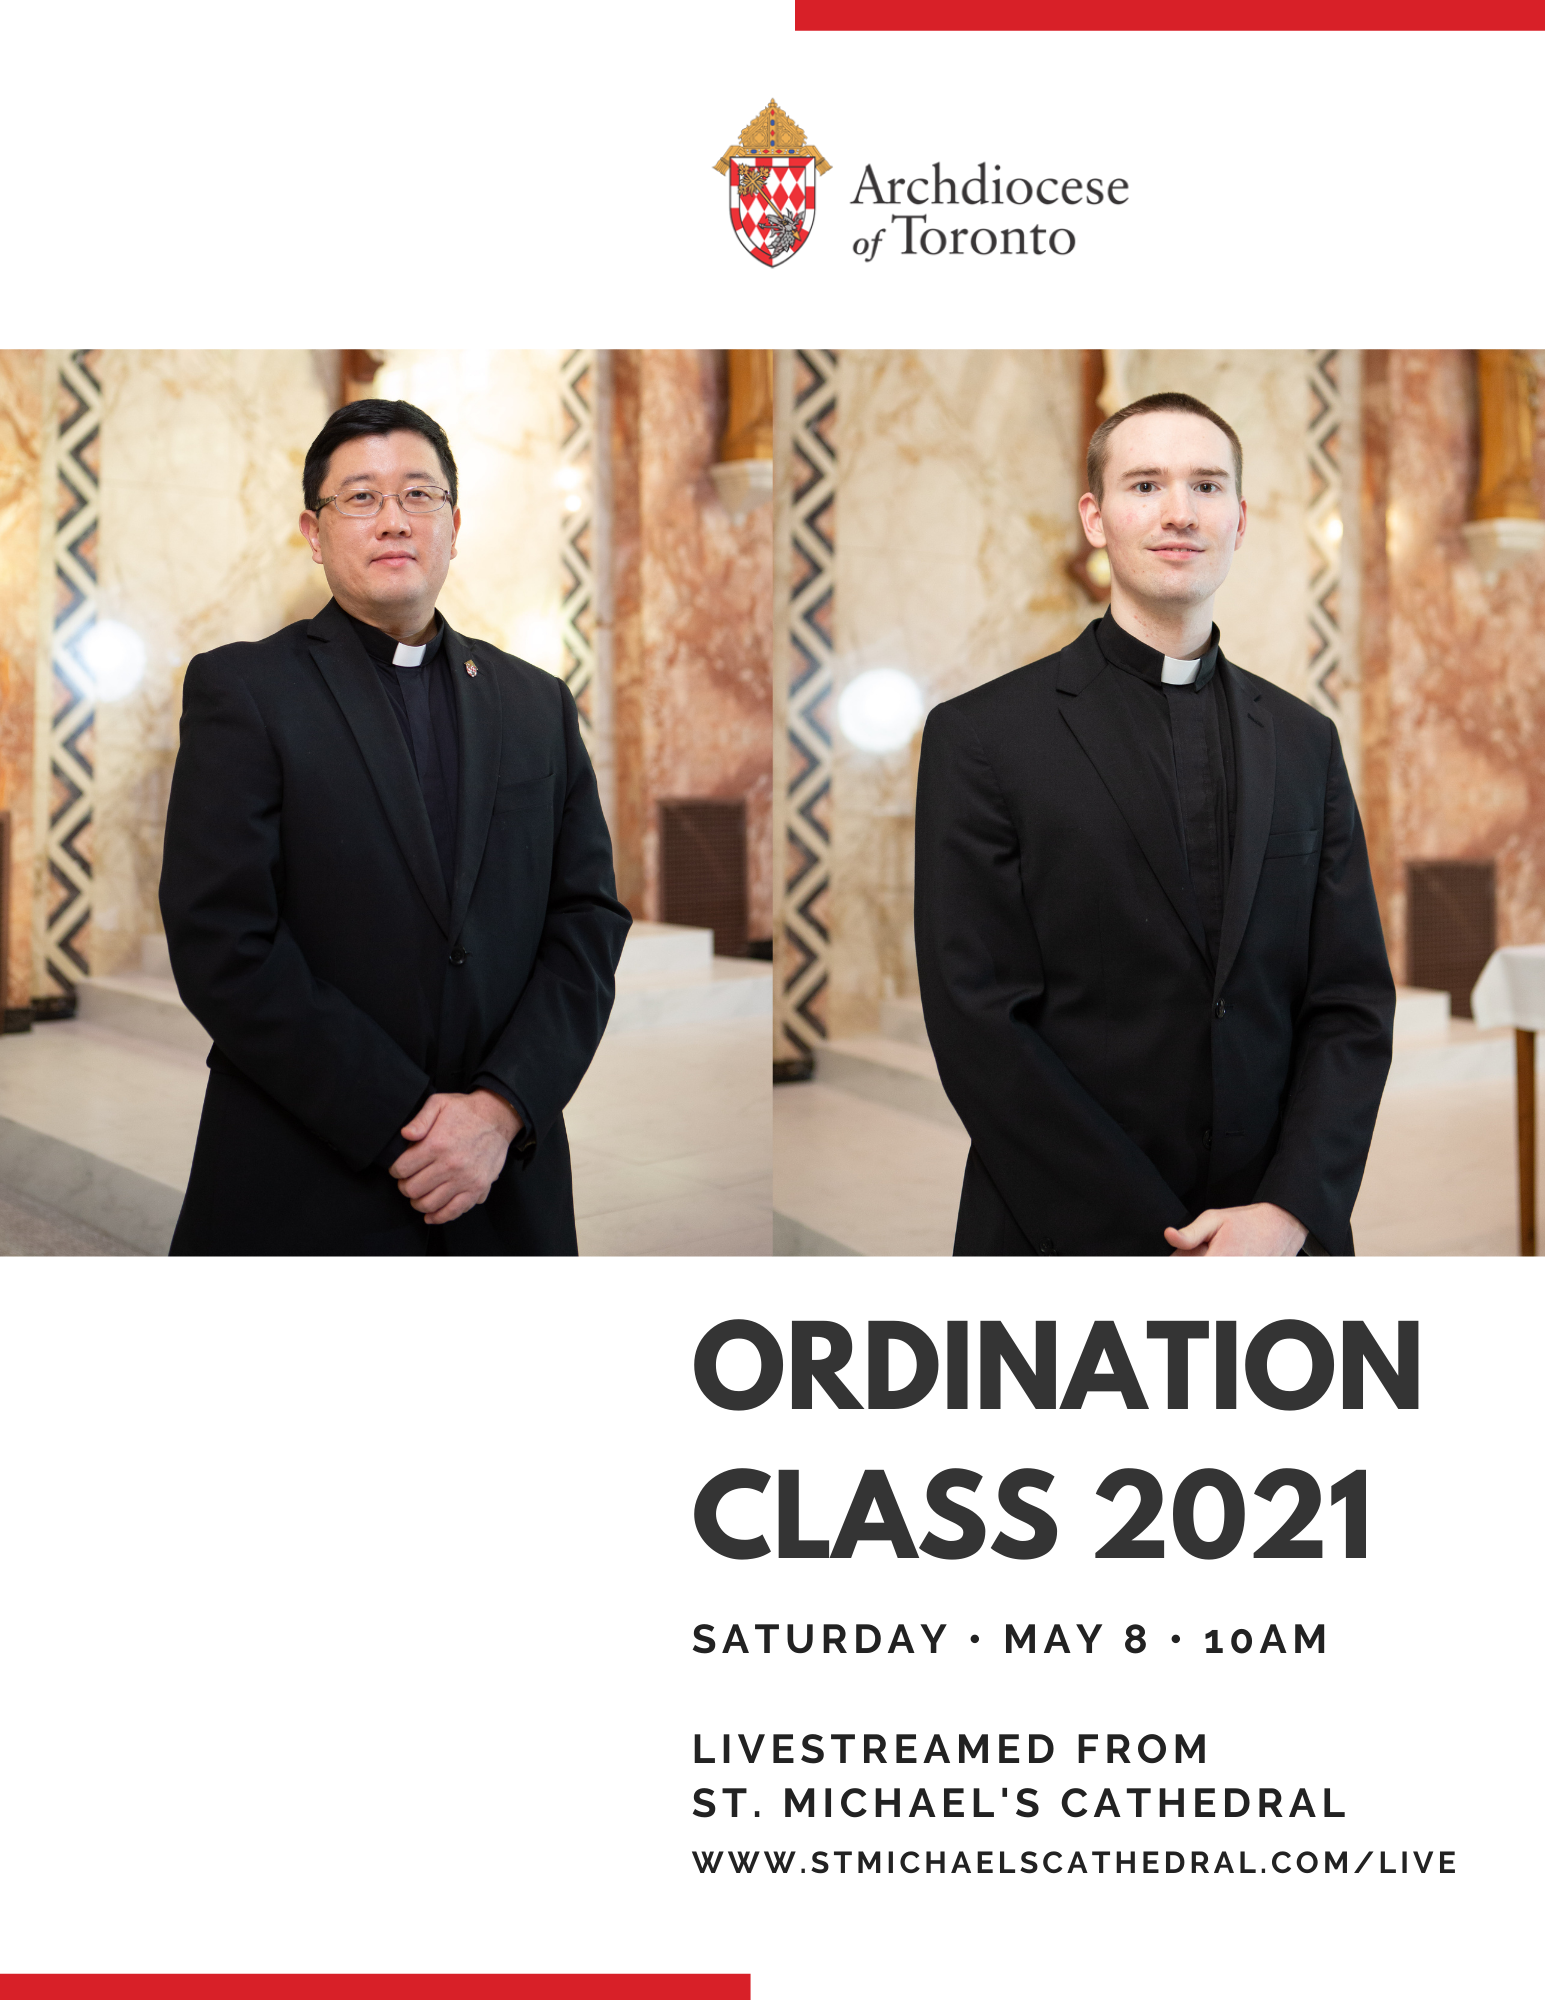 Photos of the two men who will be ordained to the priesthood of the Archdiocese of Toronto in 2021